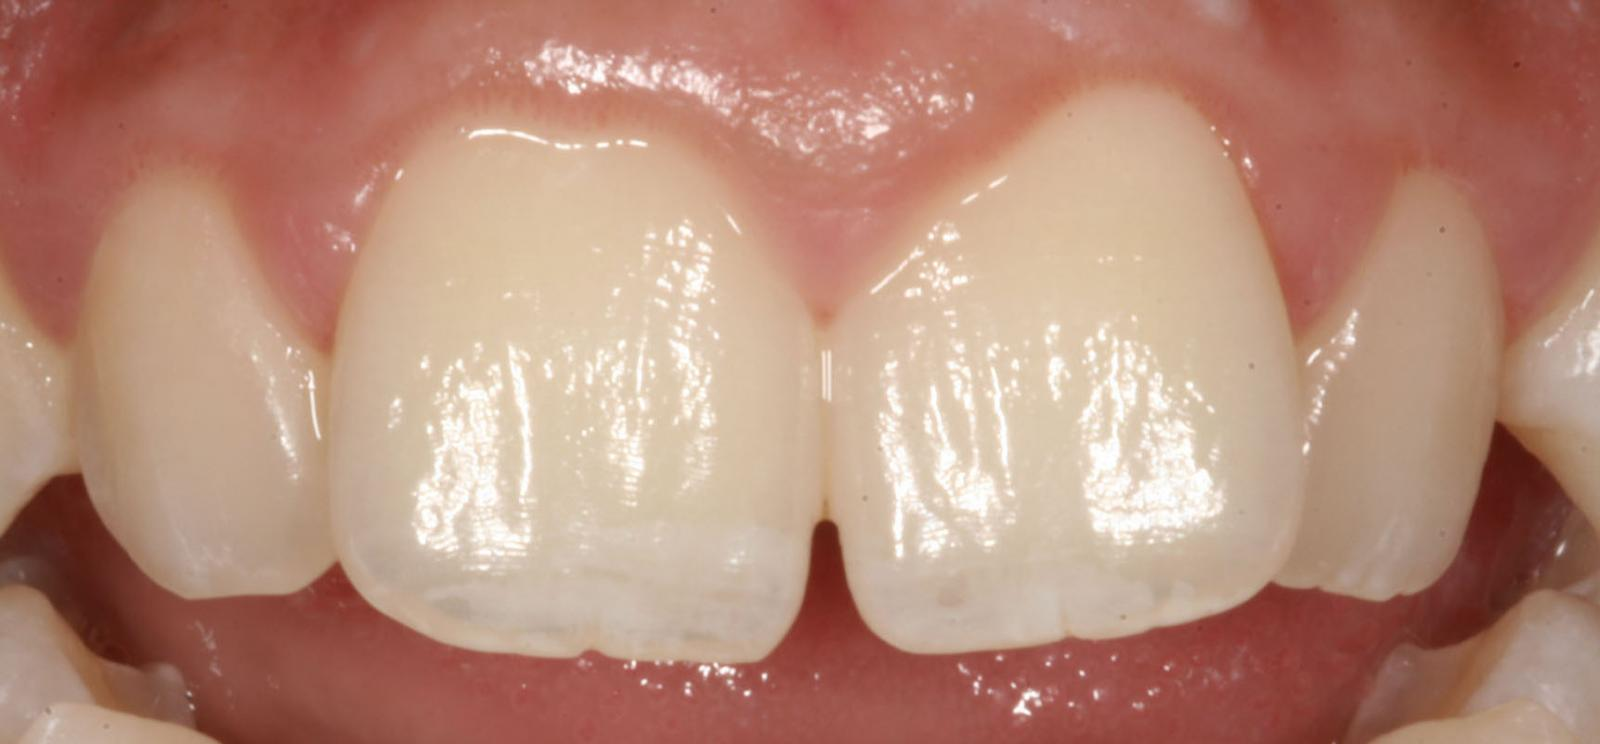 6 weeks of alignment, ClearSmile Inman Aligner